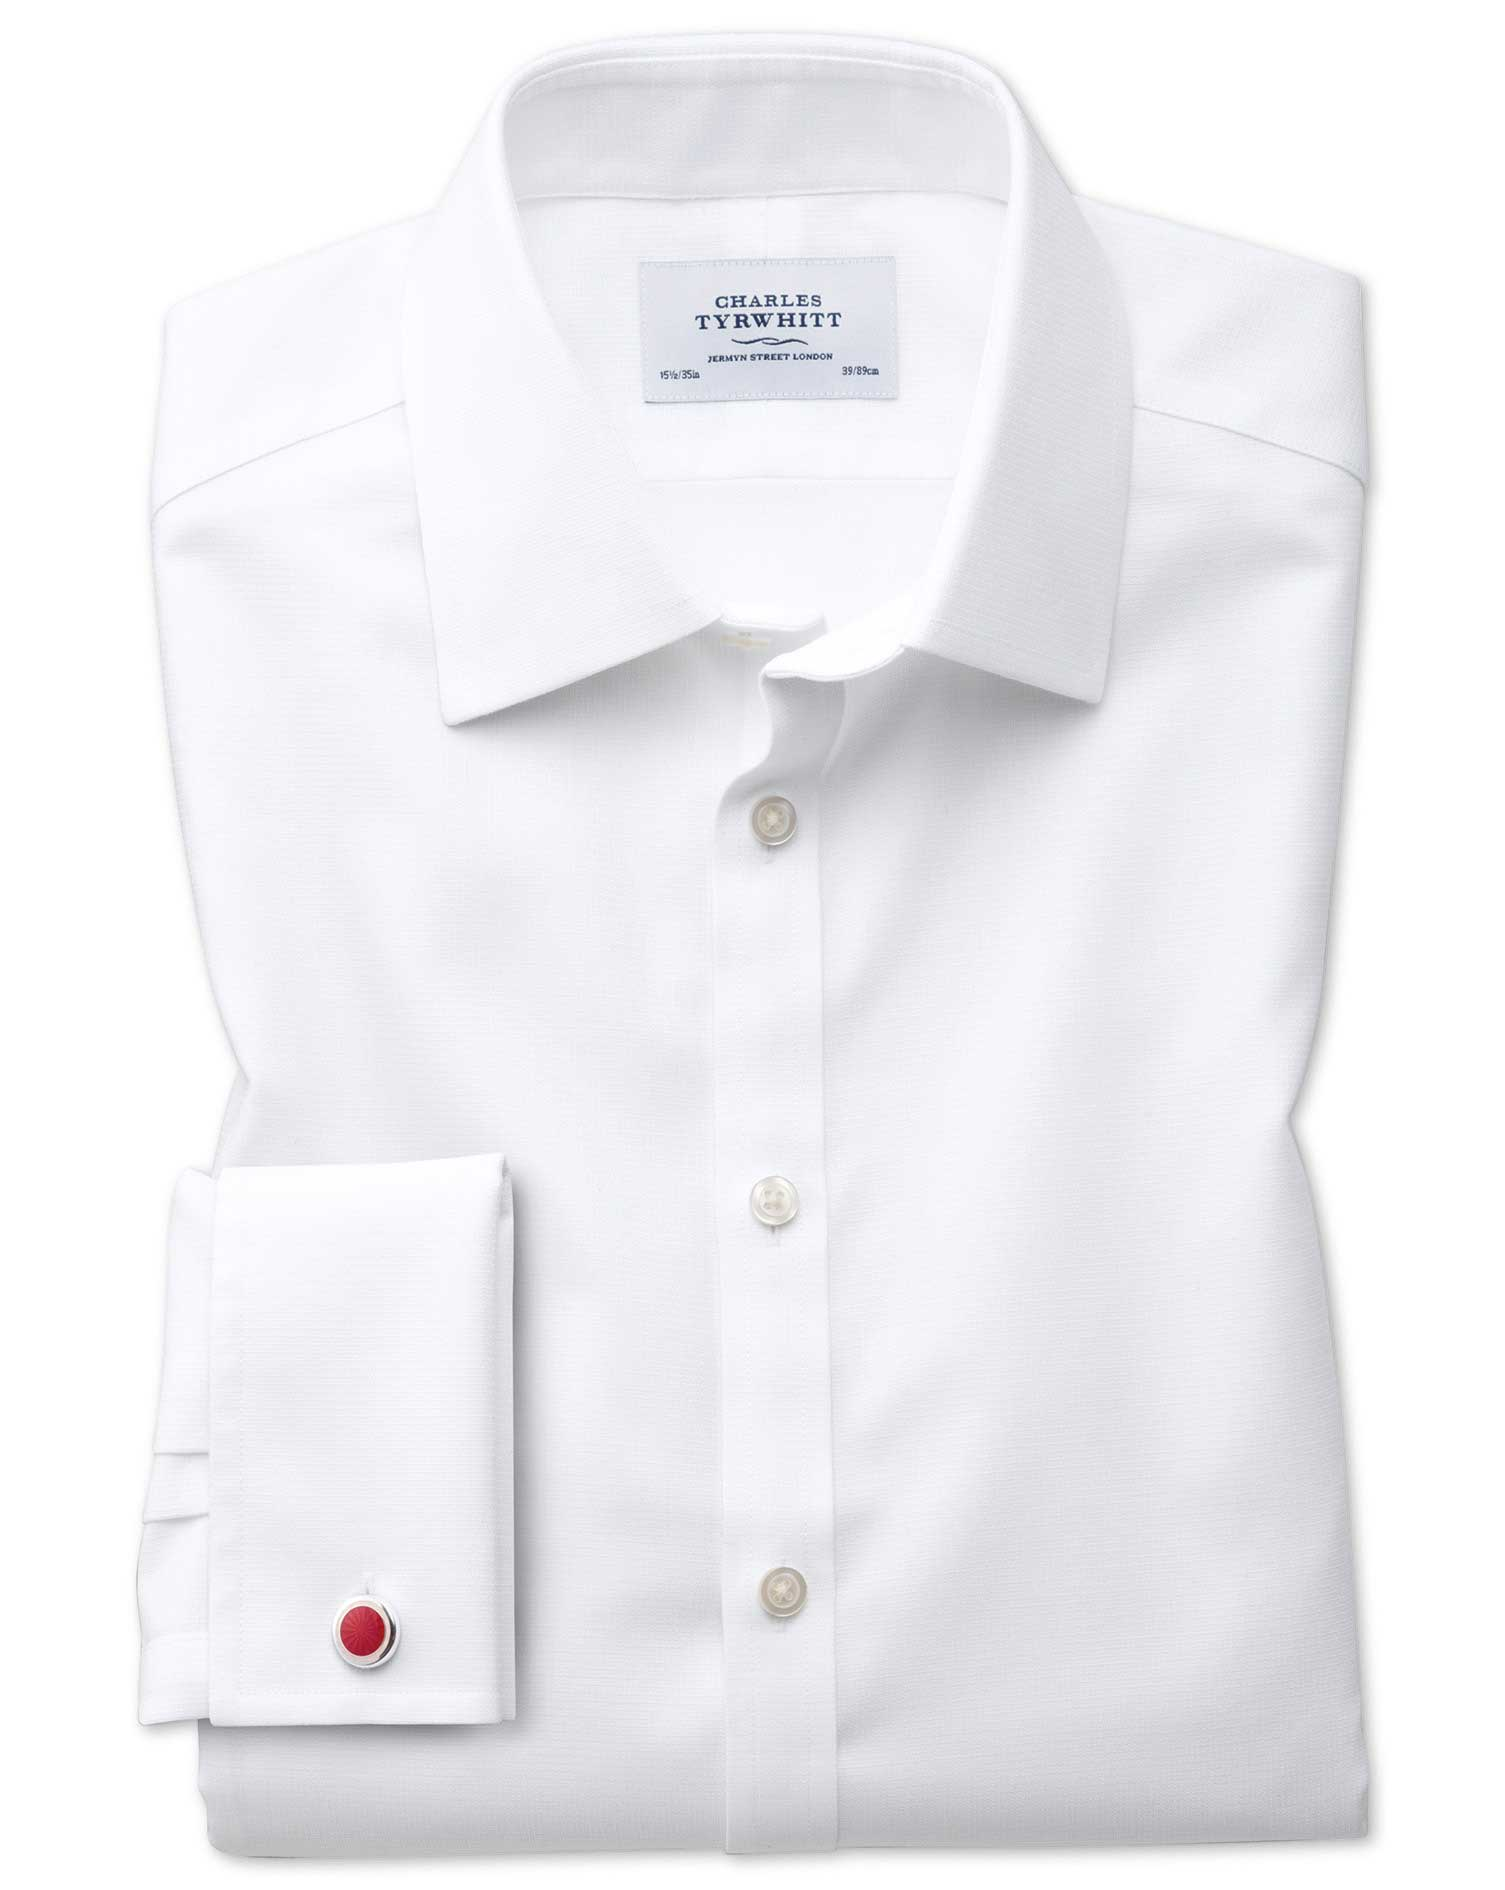 Classic Fit Non-Iron Square Weave White Cotton Formal Shirt Single Cuff Size 16/36 by Charles Tyrwhi